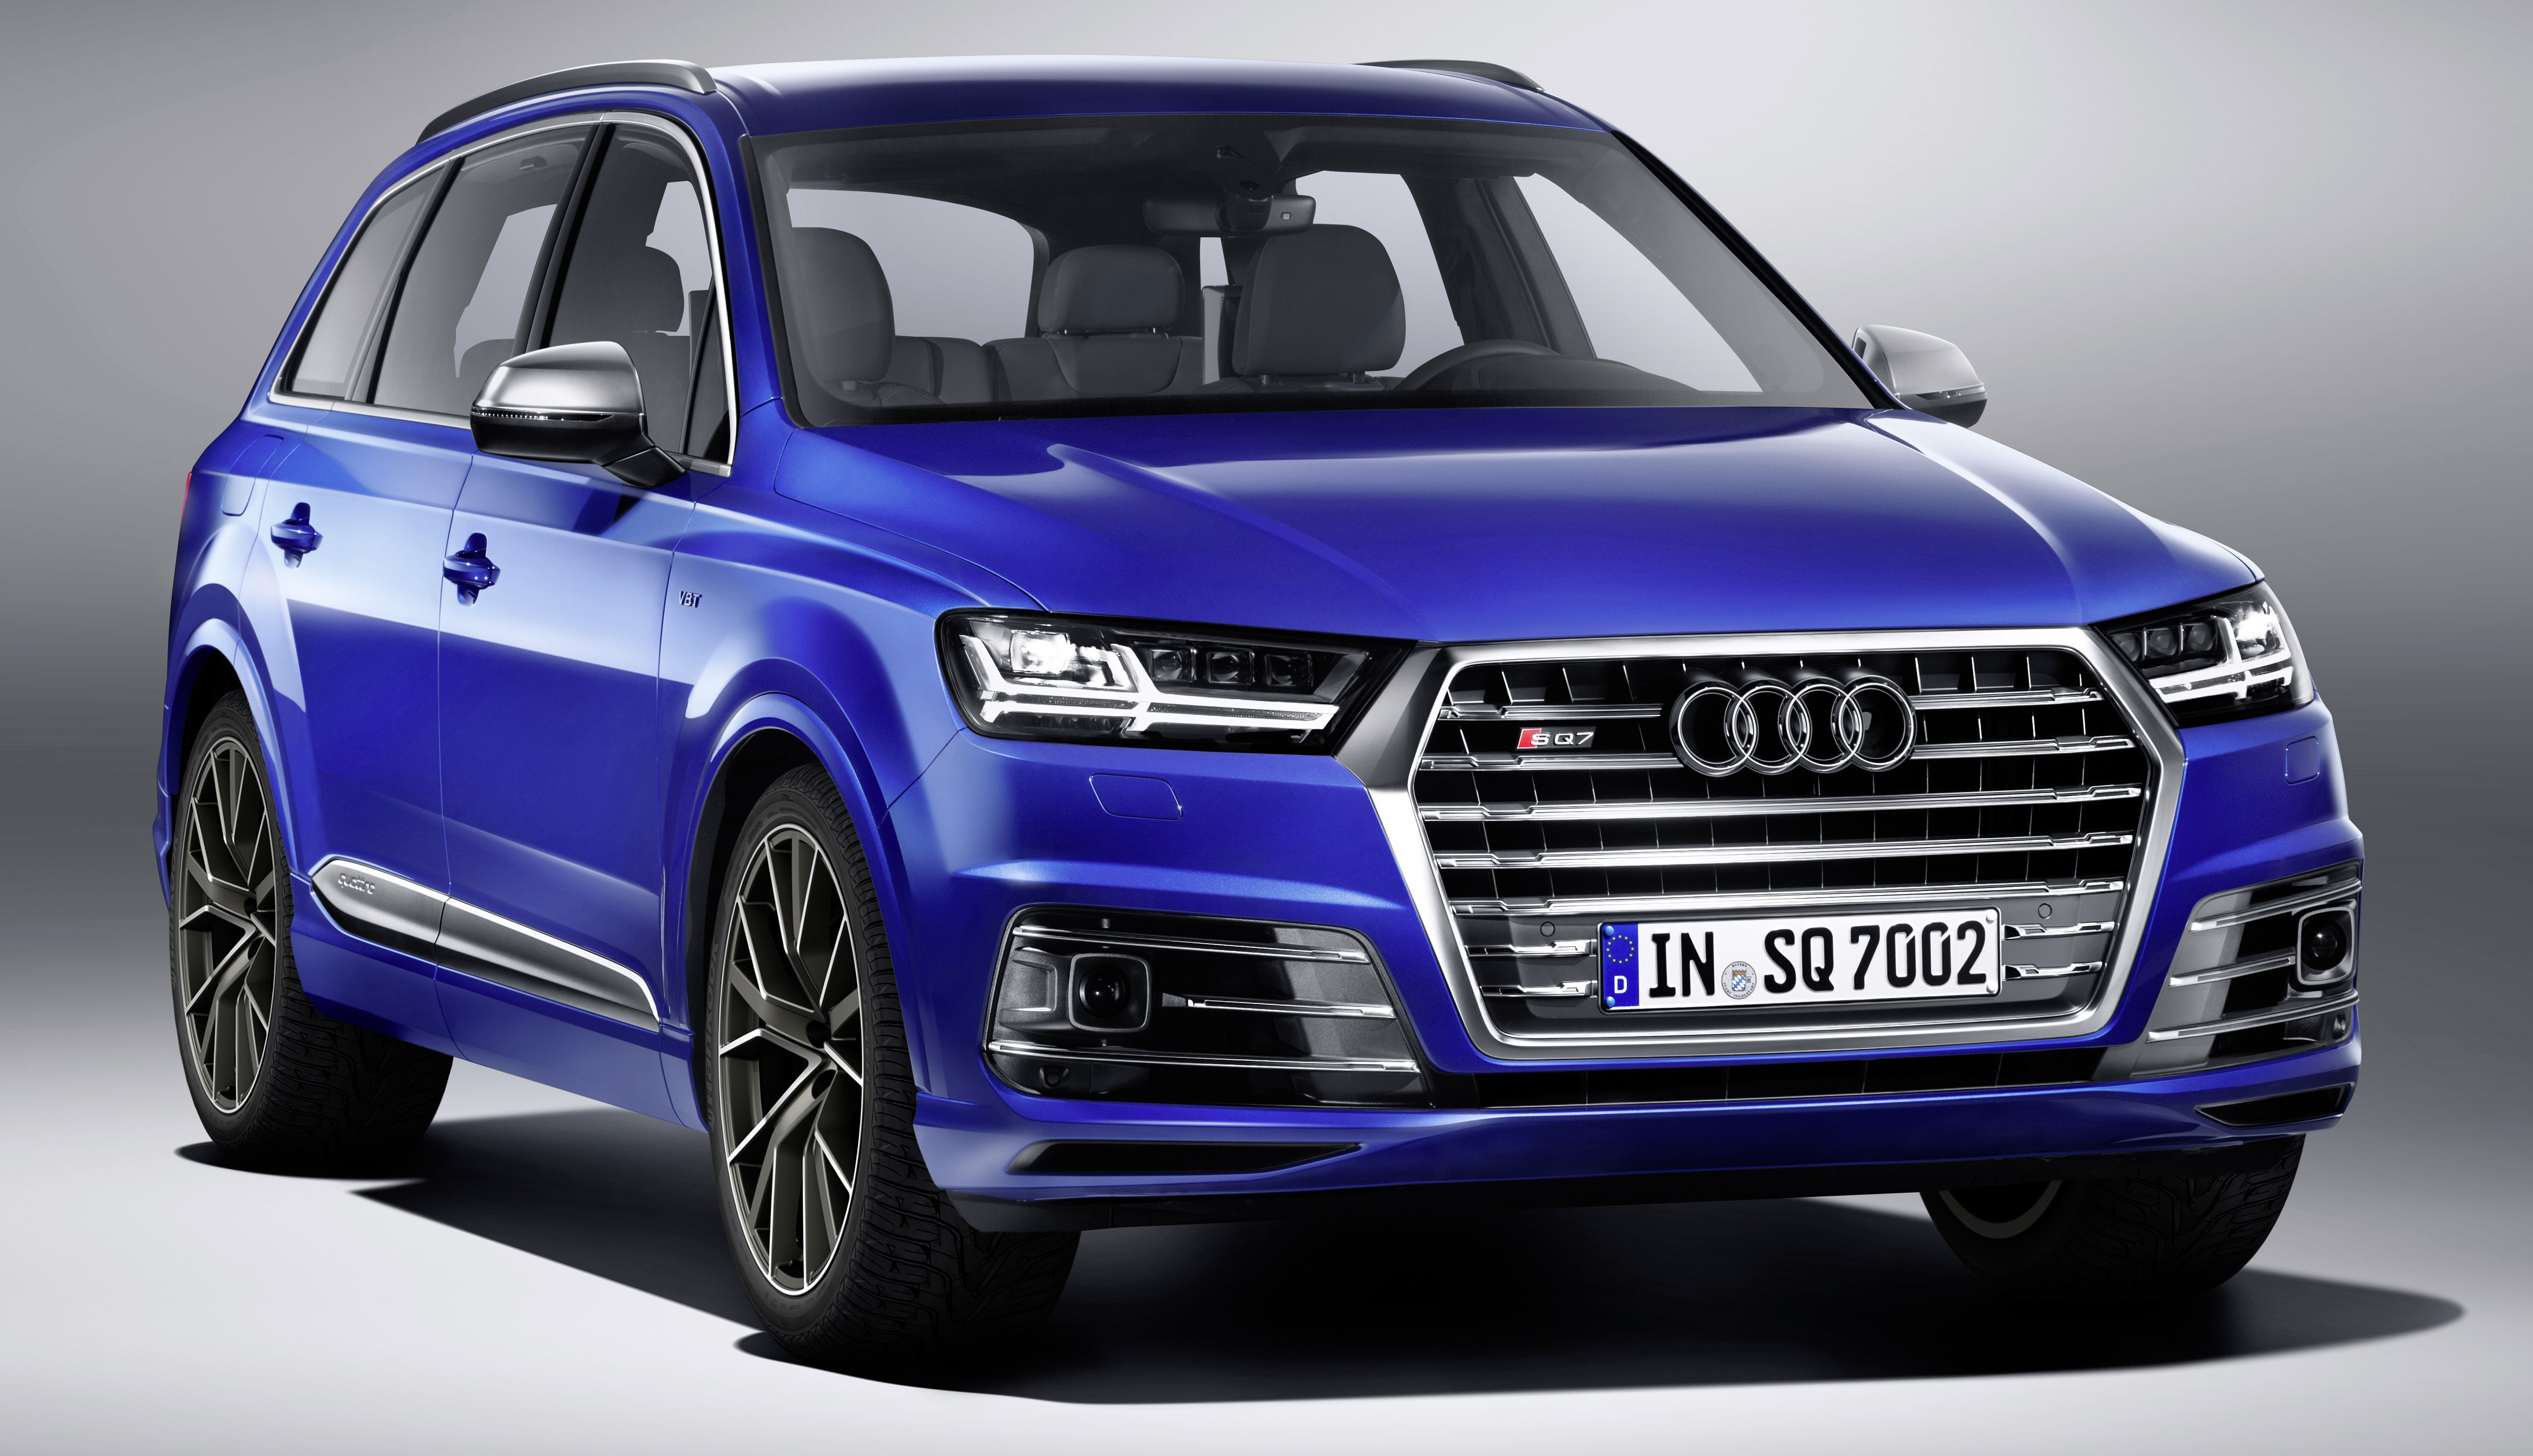 Audi Sq7 Tdi First Production Car With Electric Turbo